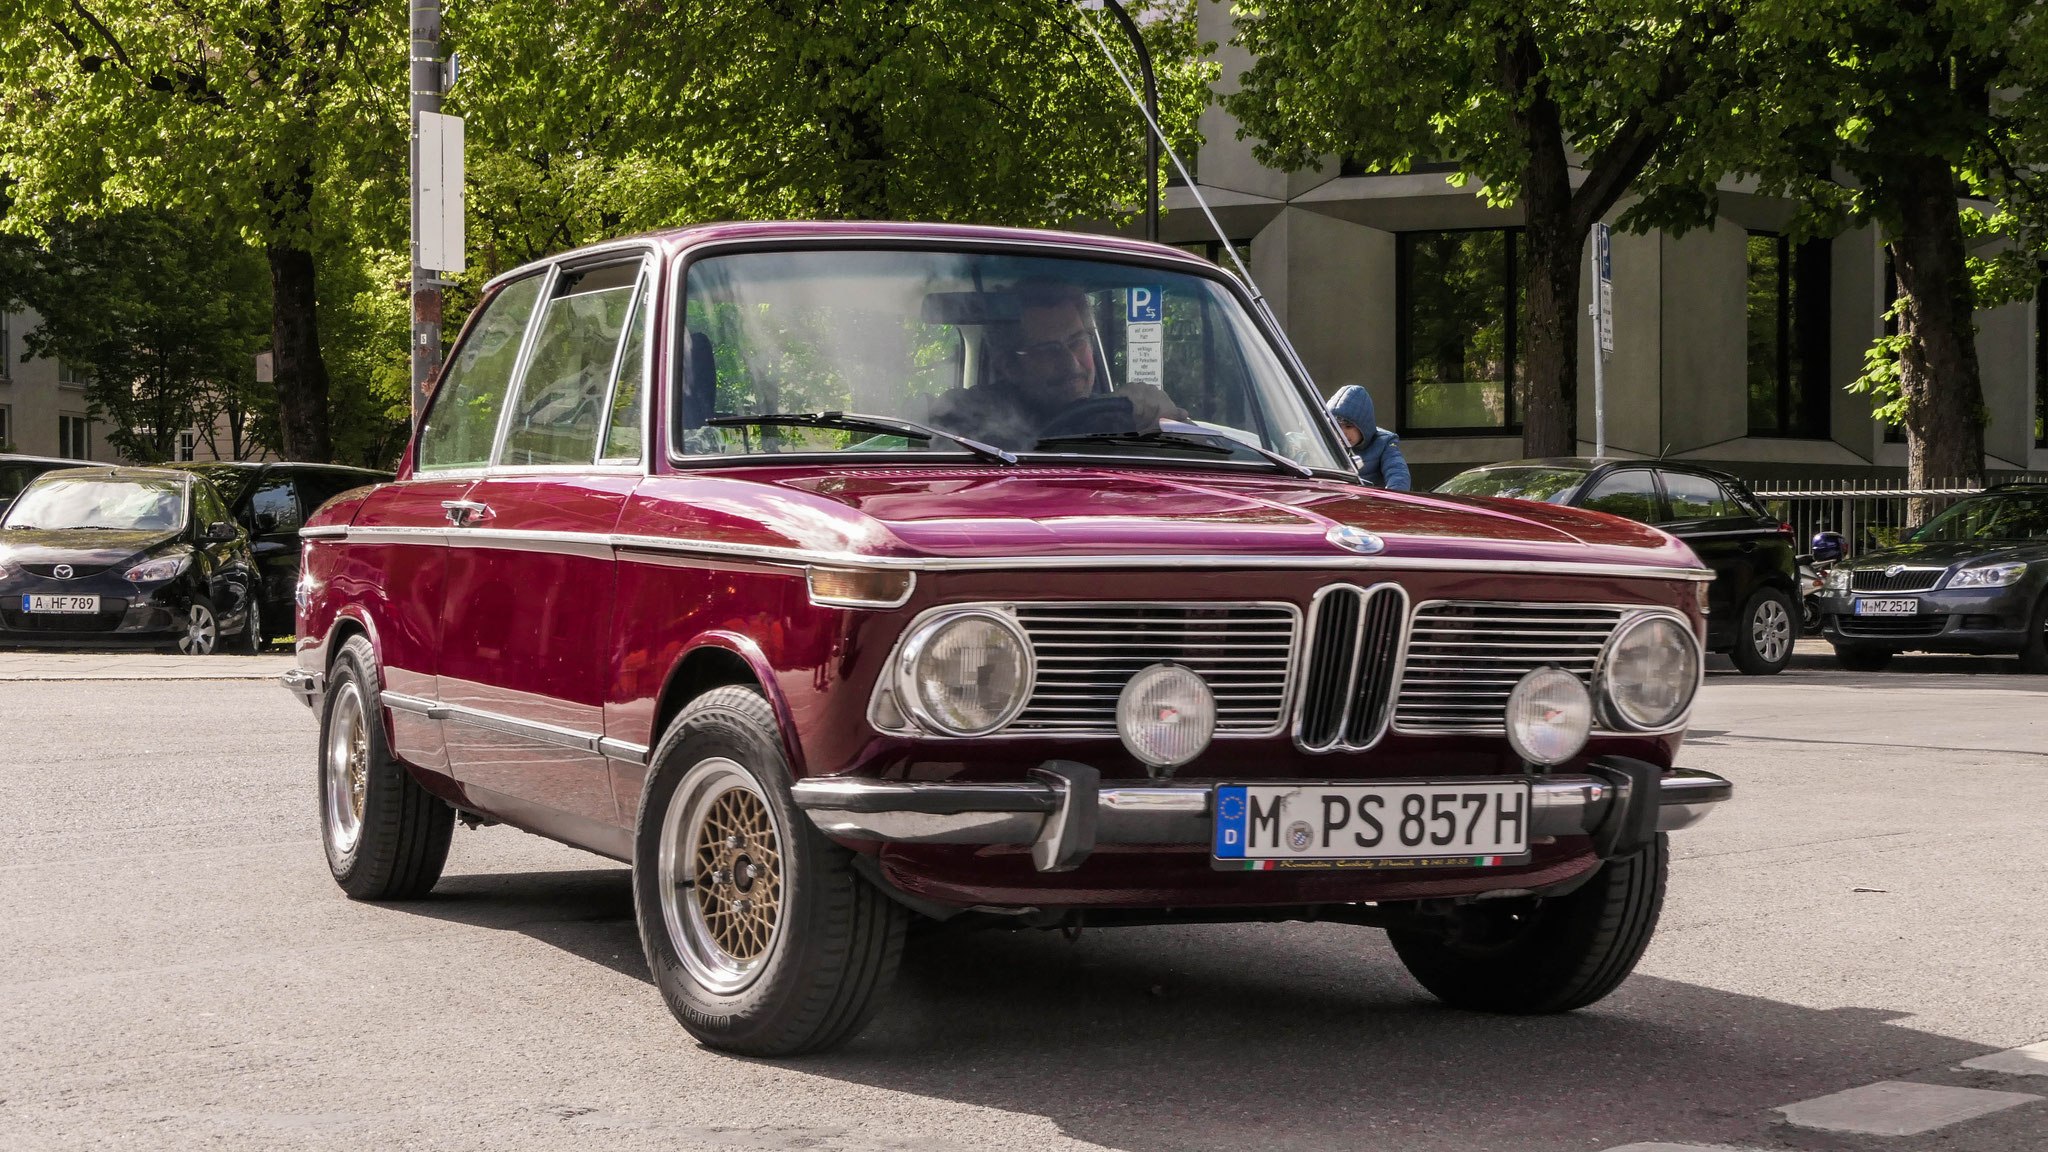 BMW 2002 Tii - M-PS-857H